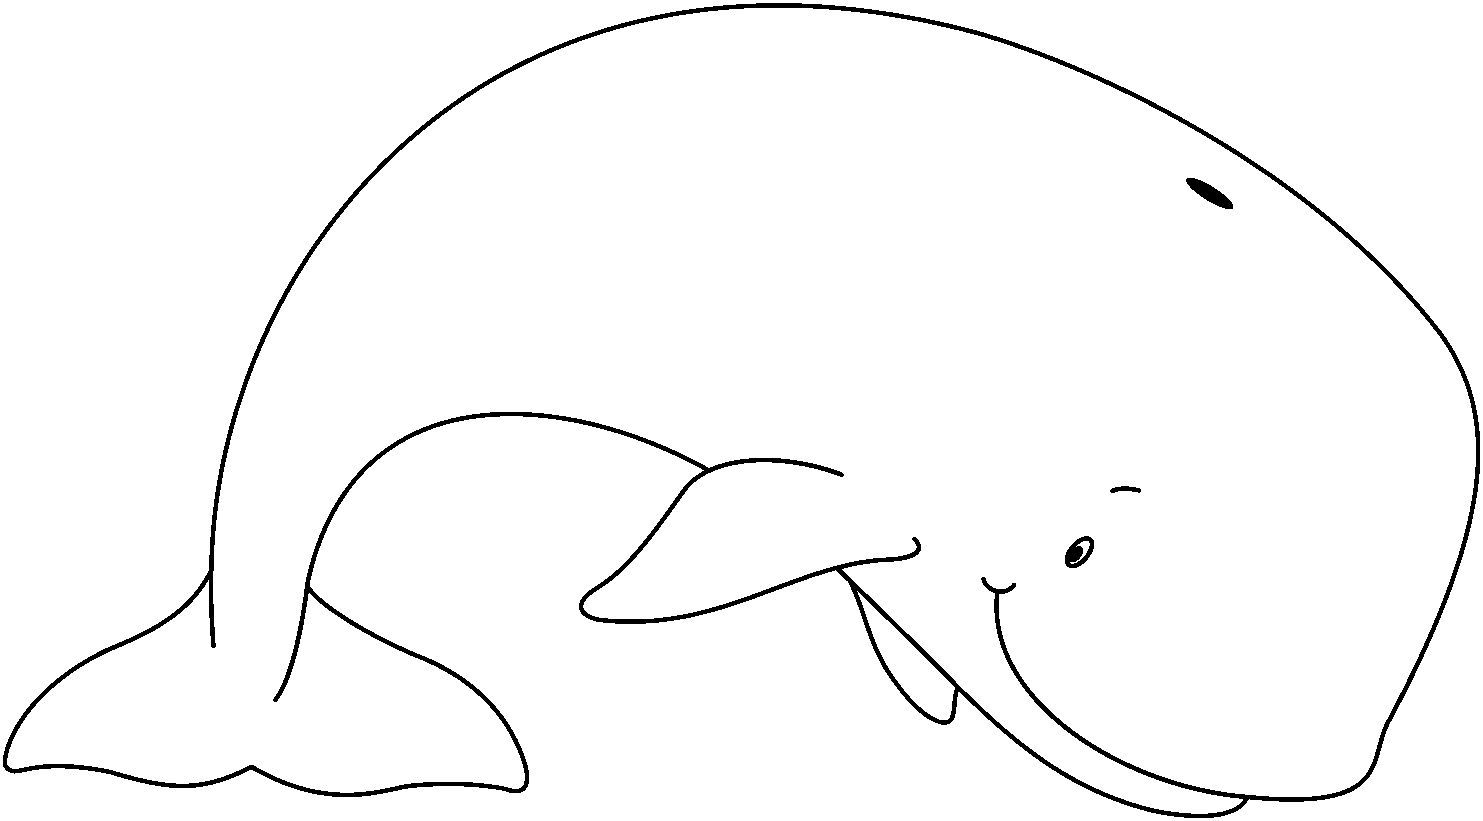 whale outline whale outline svg clip arts download  download clip art whale outline